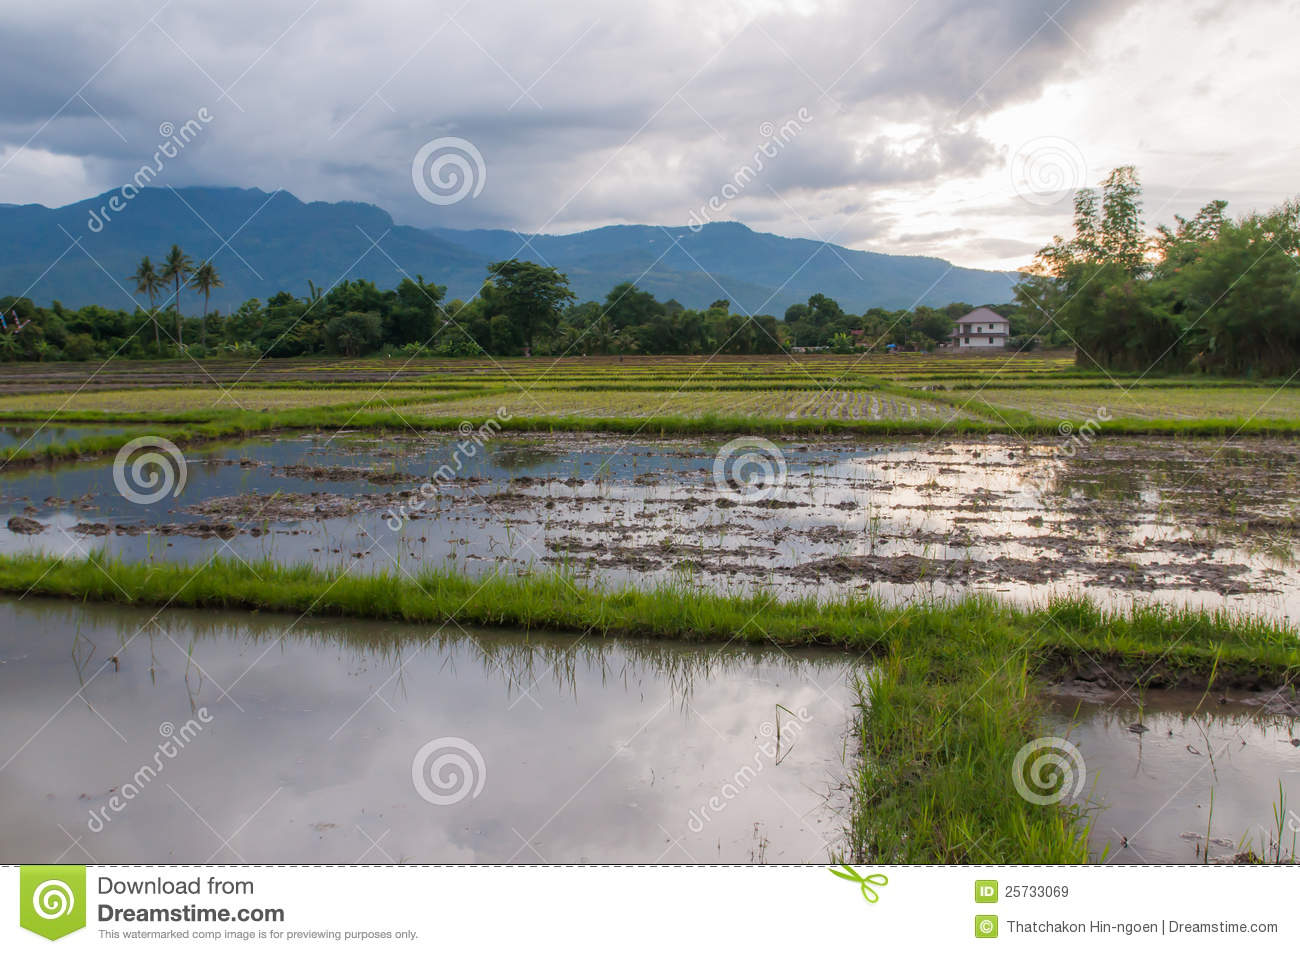 Prepare the soil for rice fields